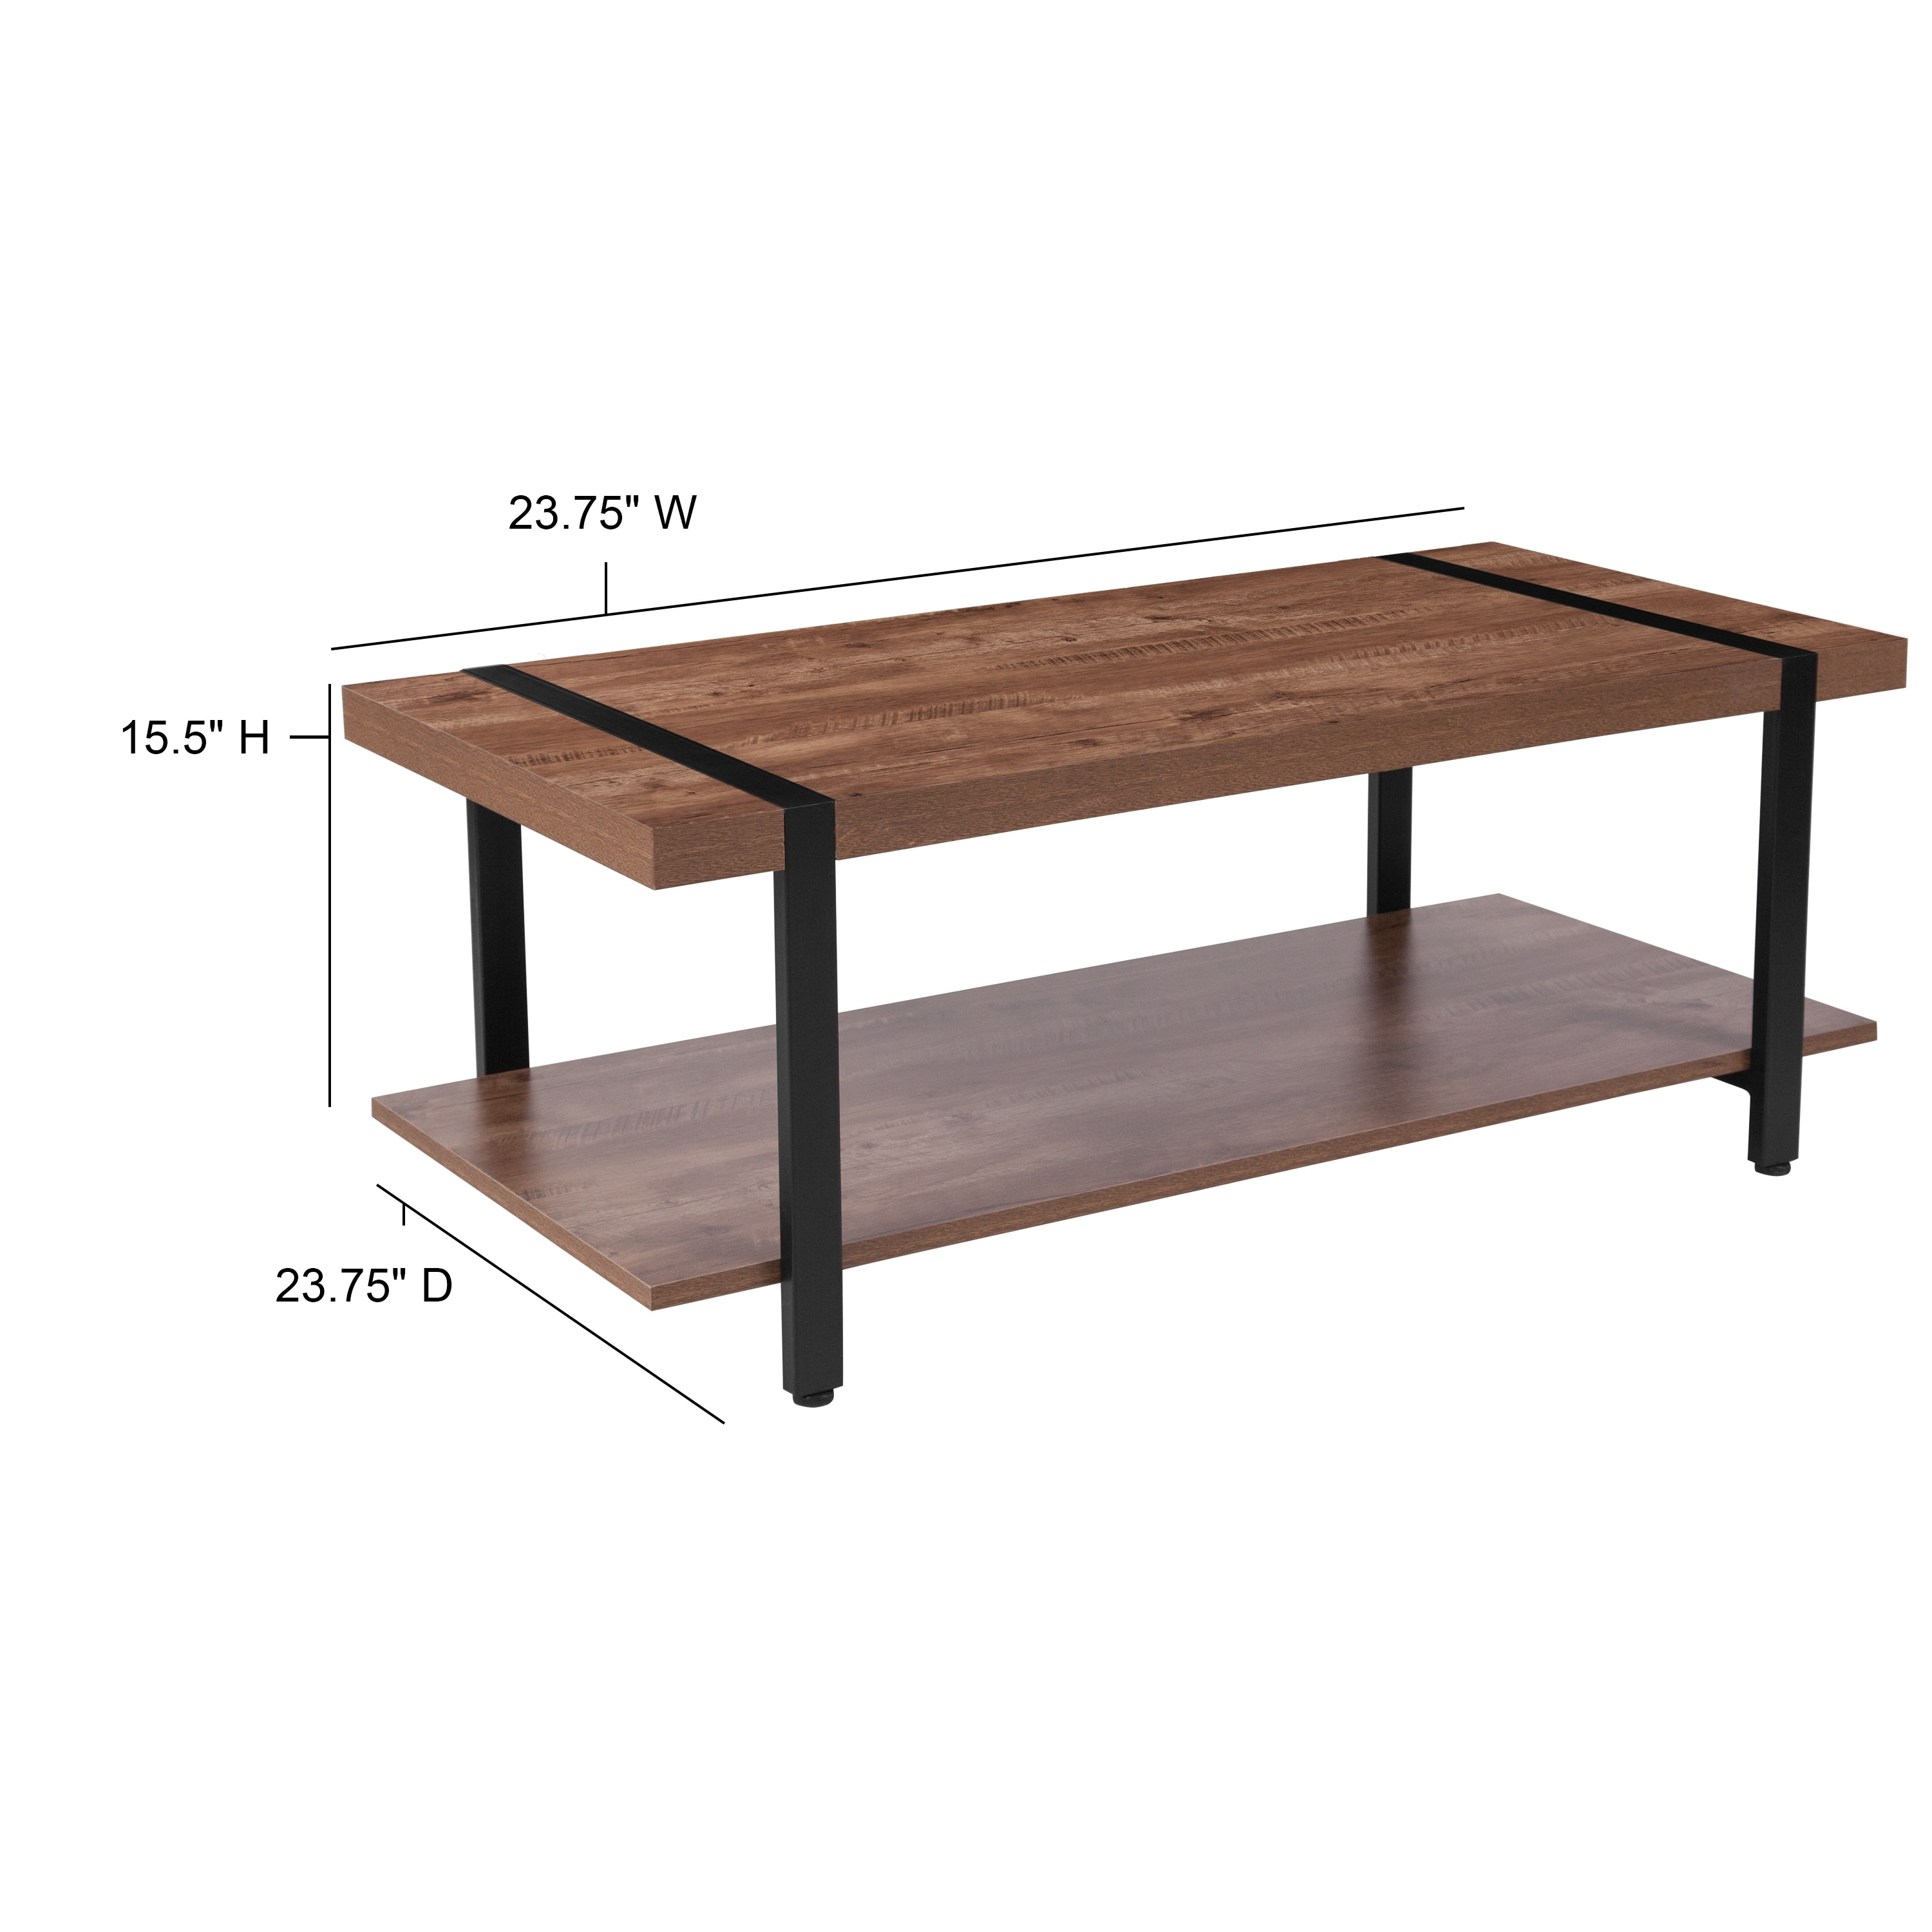 - Shop Rustic Wood Grain Finish Coffee Table With Black Metal Legs